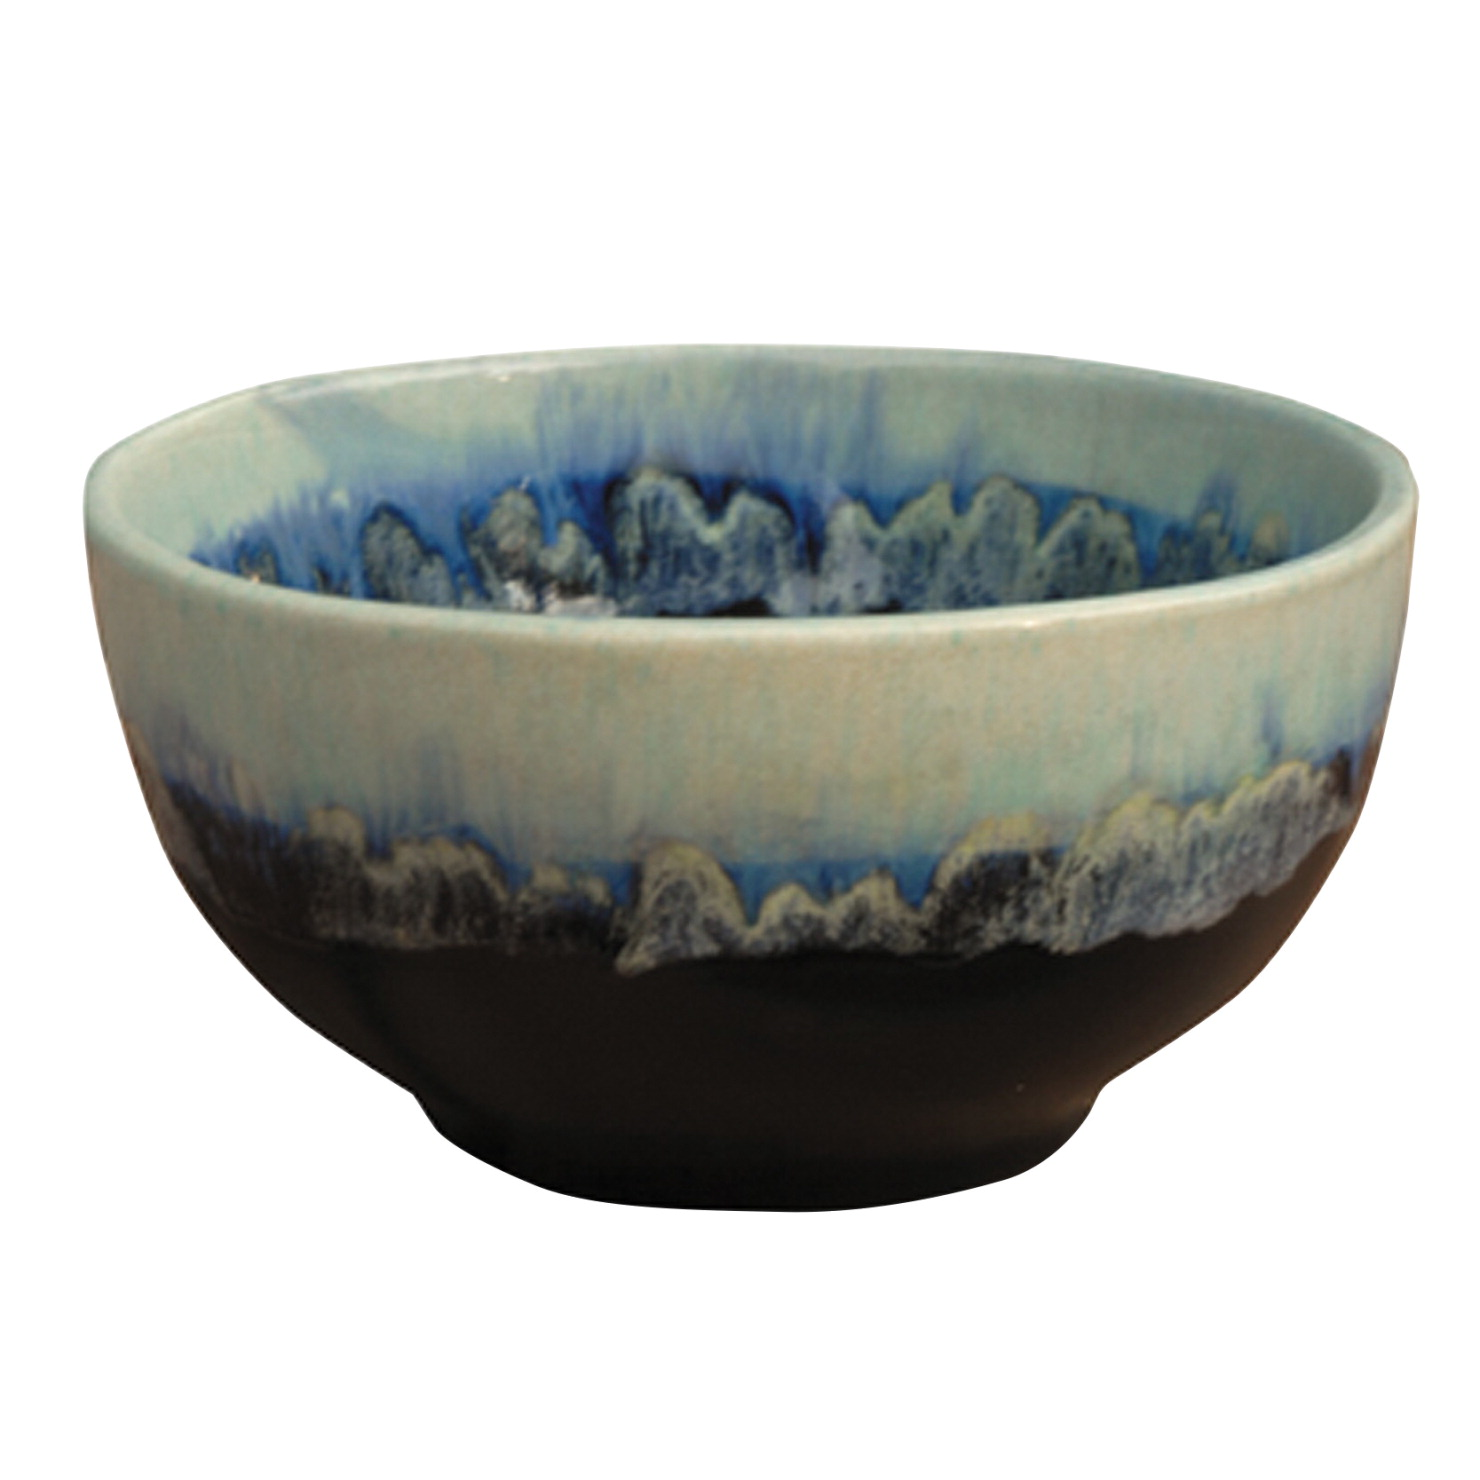 Bisque rice bowl school specialty marketplace for Bisque ceramic craft stores